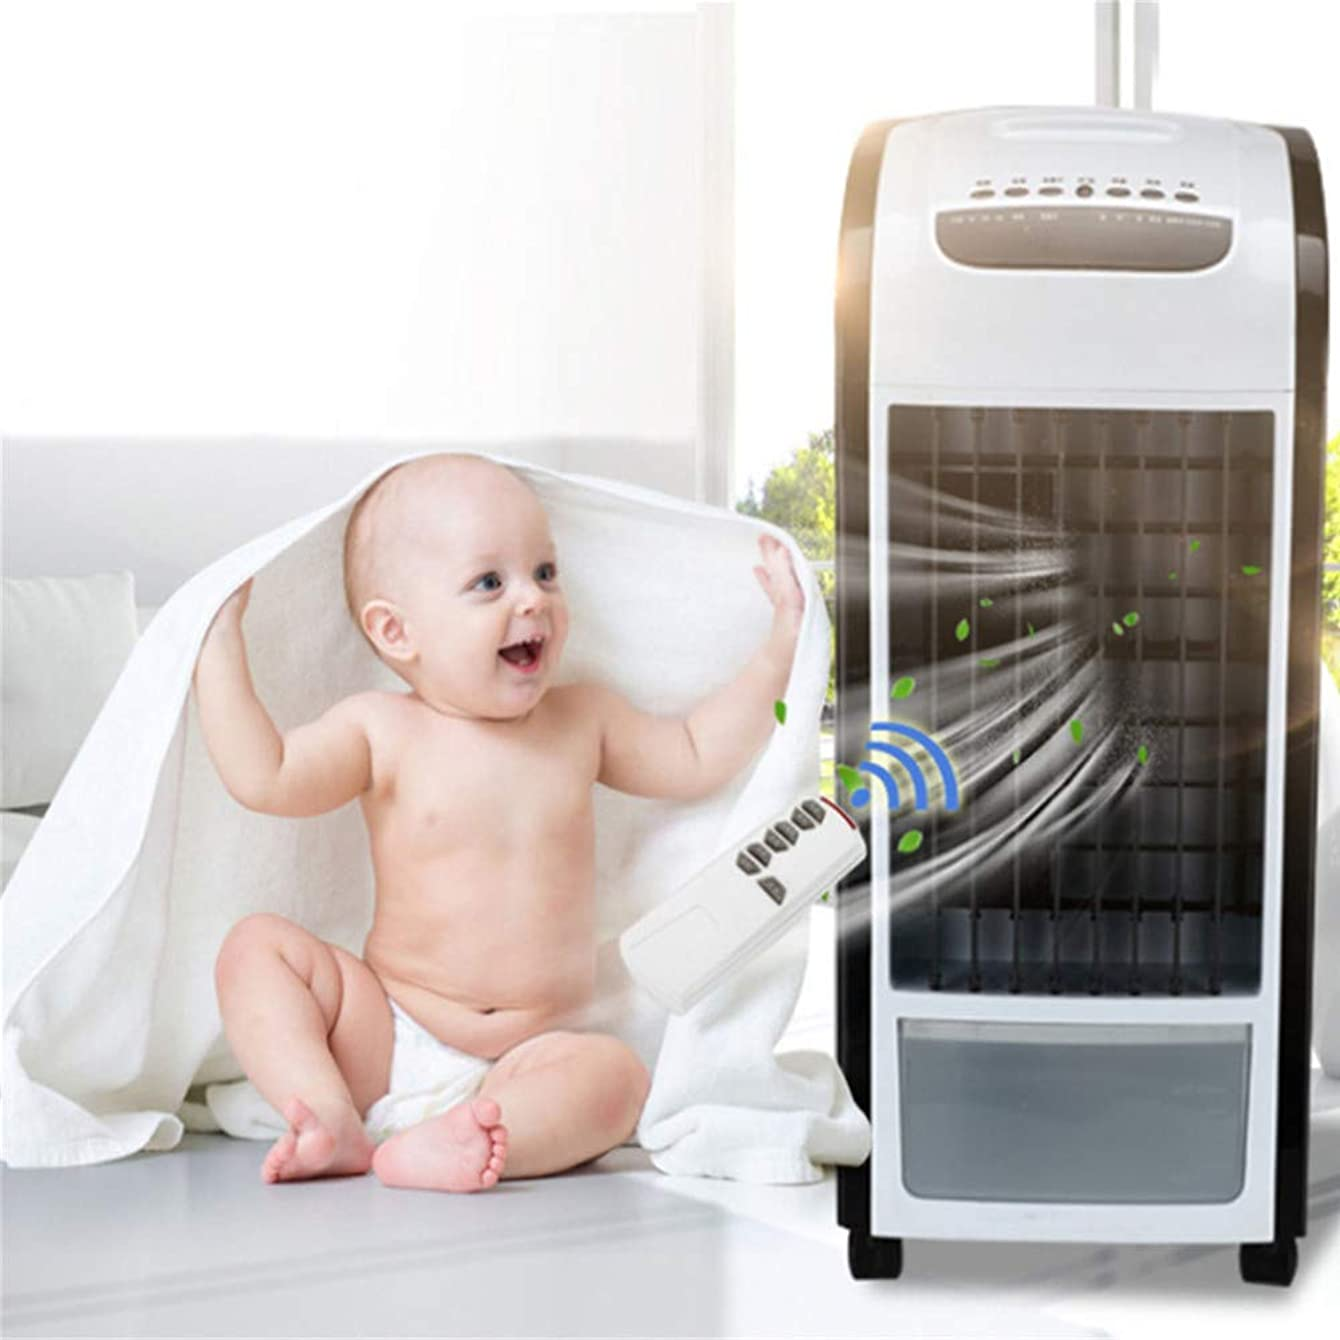 iLUGU Big Space Air Conditioner Fan Air Freshener Mechanical Air Cooler Air Purifier Air Humidifier Air Circulator Evaporative Cooler for Home Bedroom Office